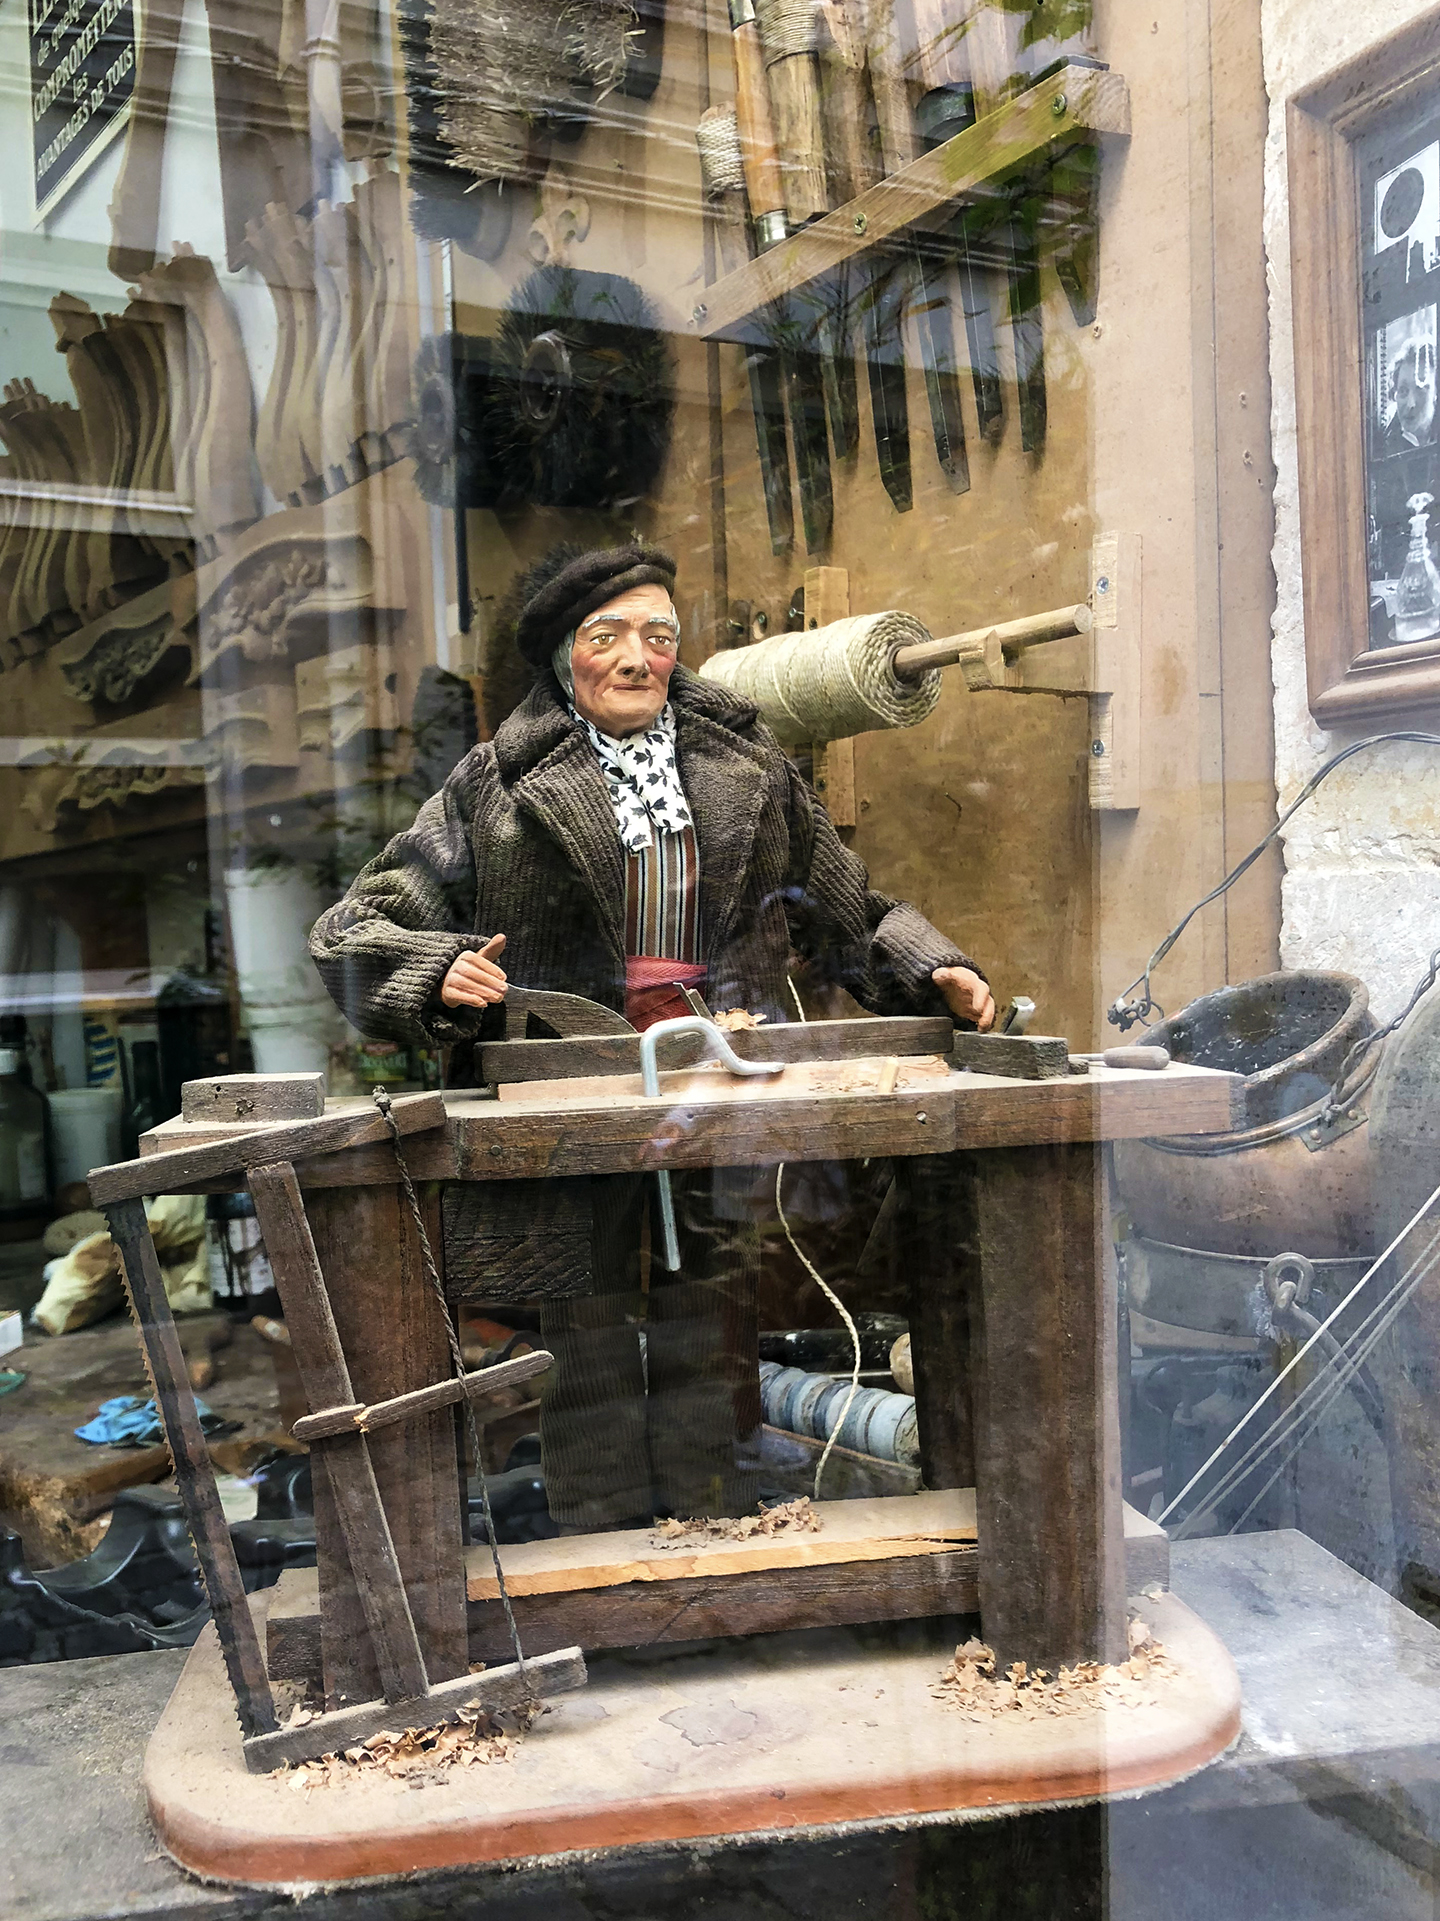 Ebénisterie Straure in cour de l'Ours. The santon of a woodworker sits in the window of the atelier.